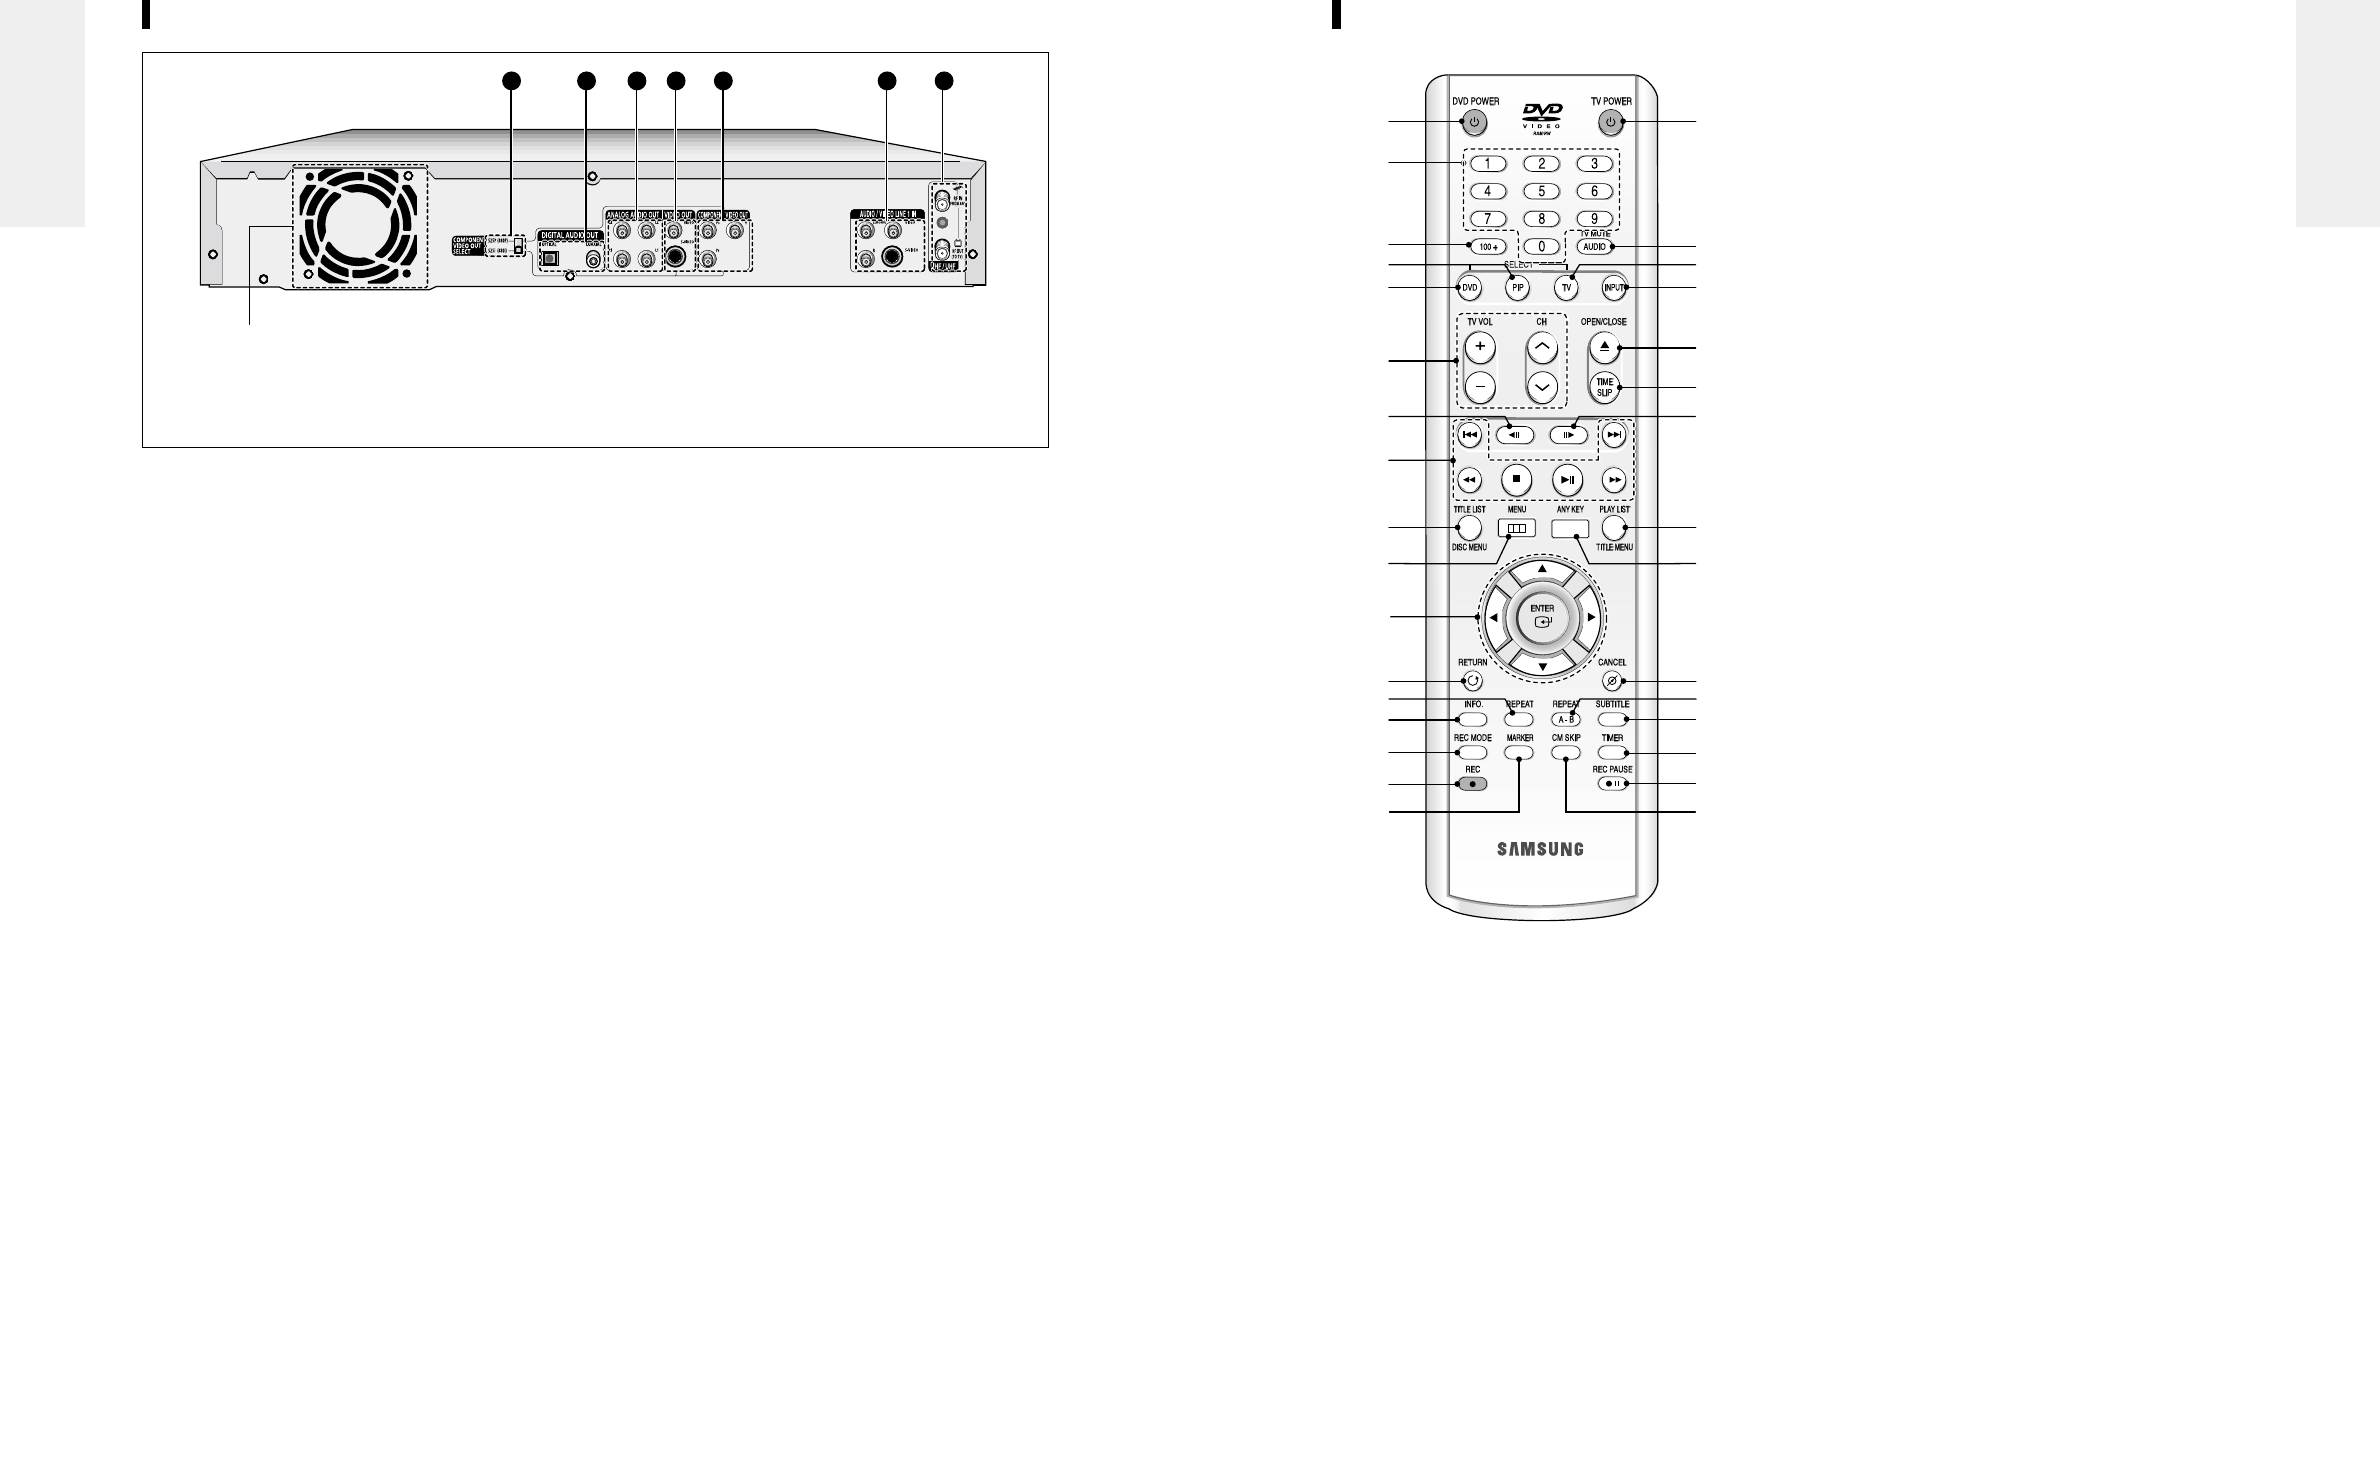 Page 8 of Samsung DVD Player DVD-R100 User Guide